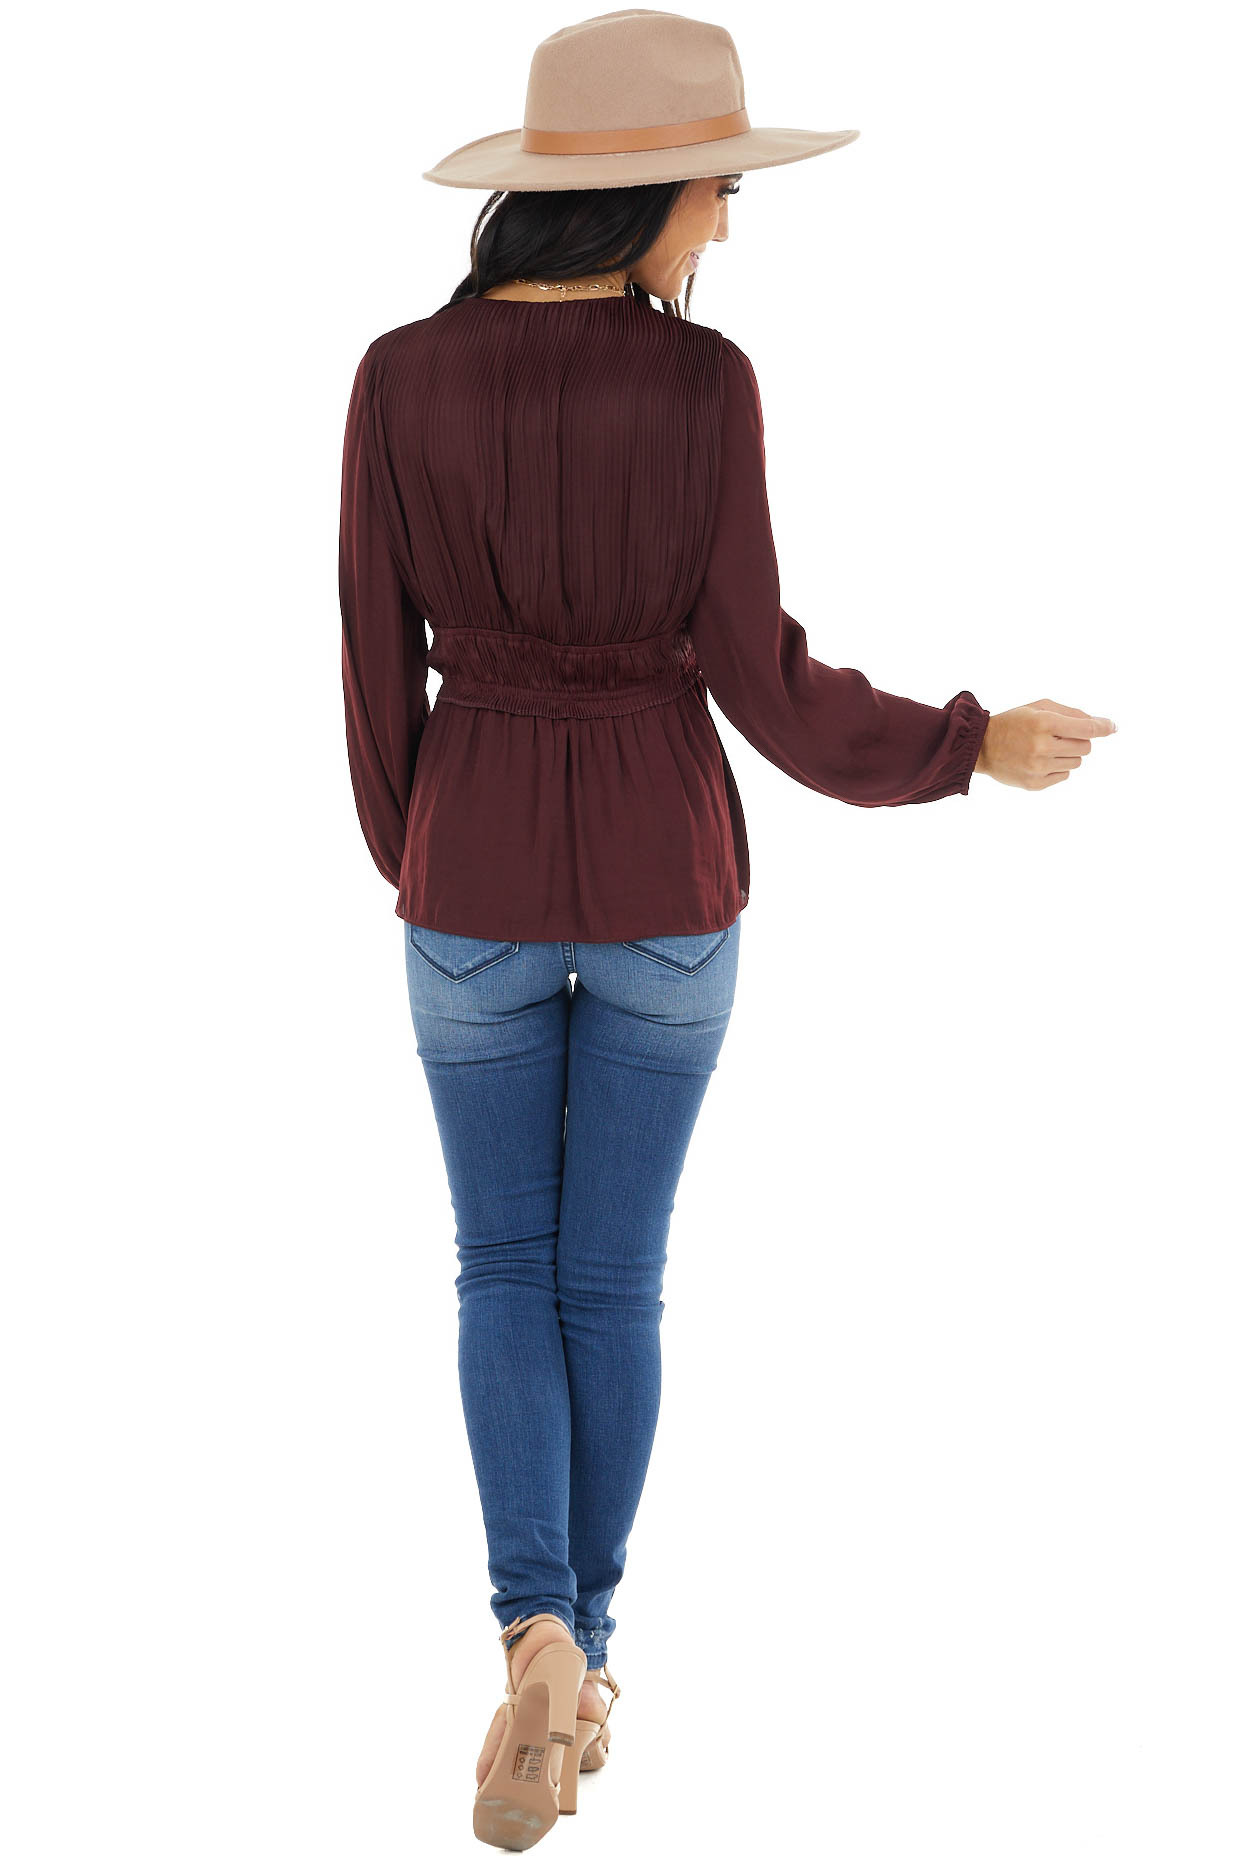 Eggplant Cinch Waist Top with Front Tie and Ruffle Details